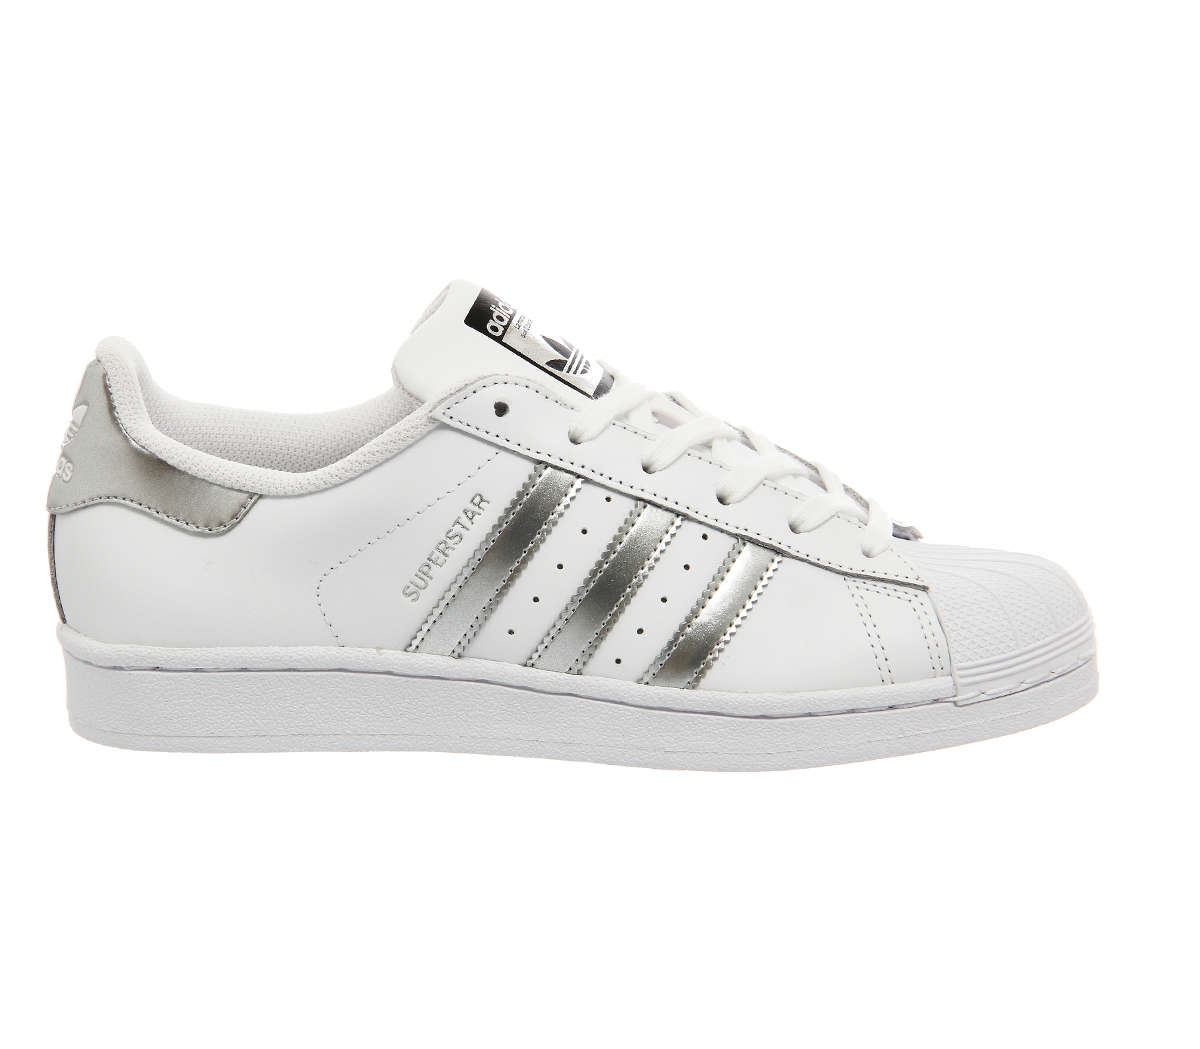 469f1f15144 Goals Shop  Adidas Superstar plata